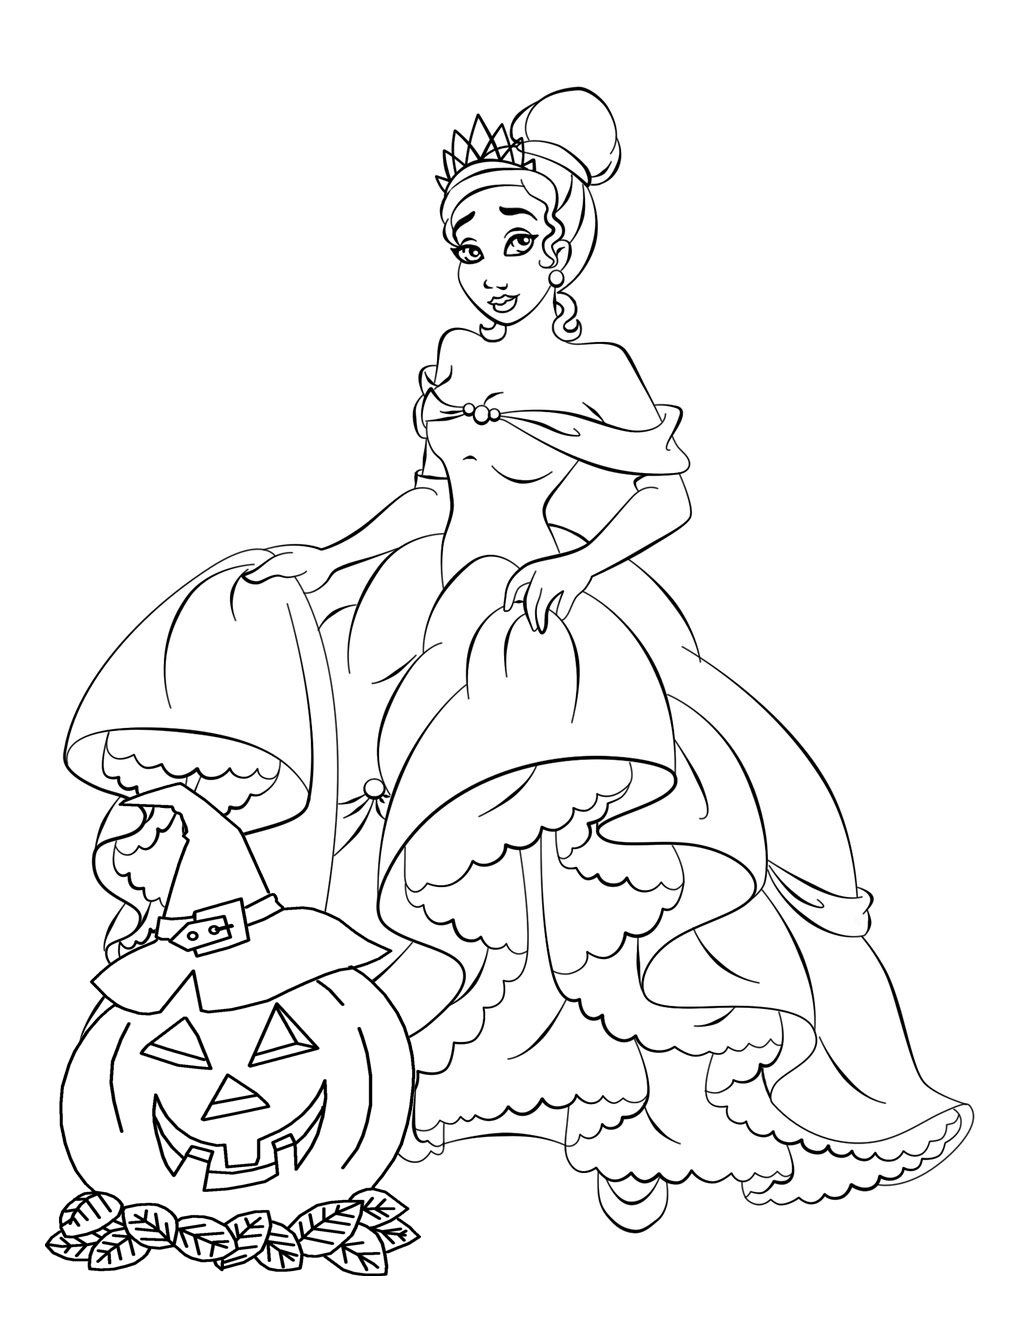 Free coloring pages for halloween - Disney Princess Free Disney Halloween Coloring Pages